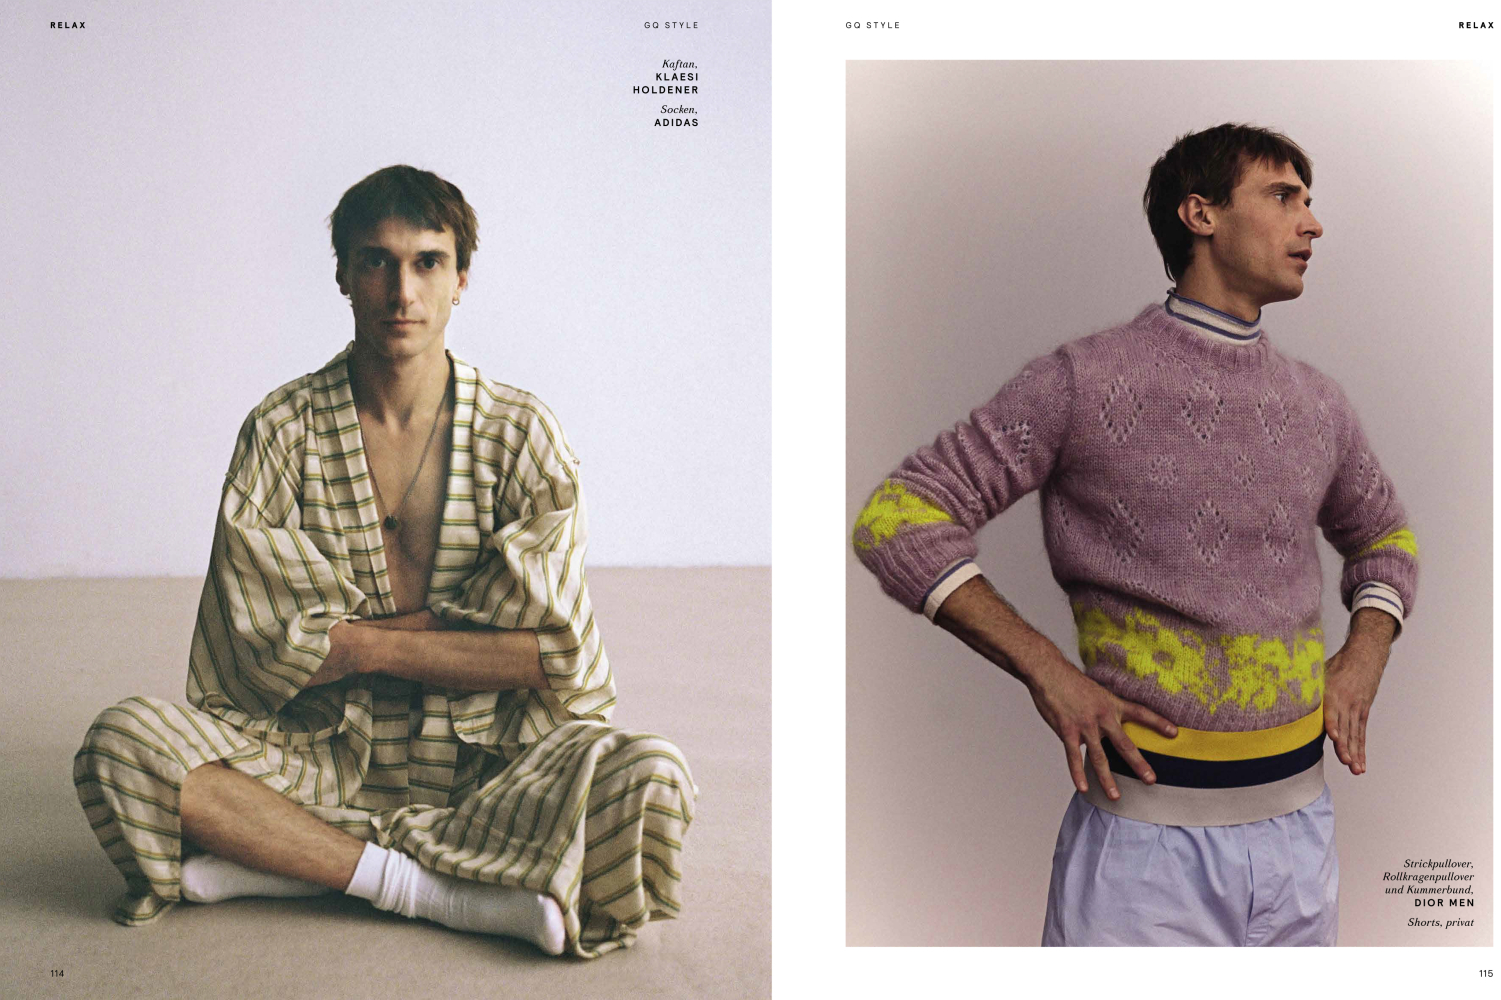 Clément Chabernaud by Jana Gerberding styled by Isabelle Thiry Relax story GQ style March 2021